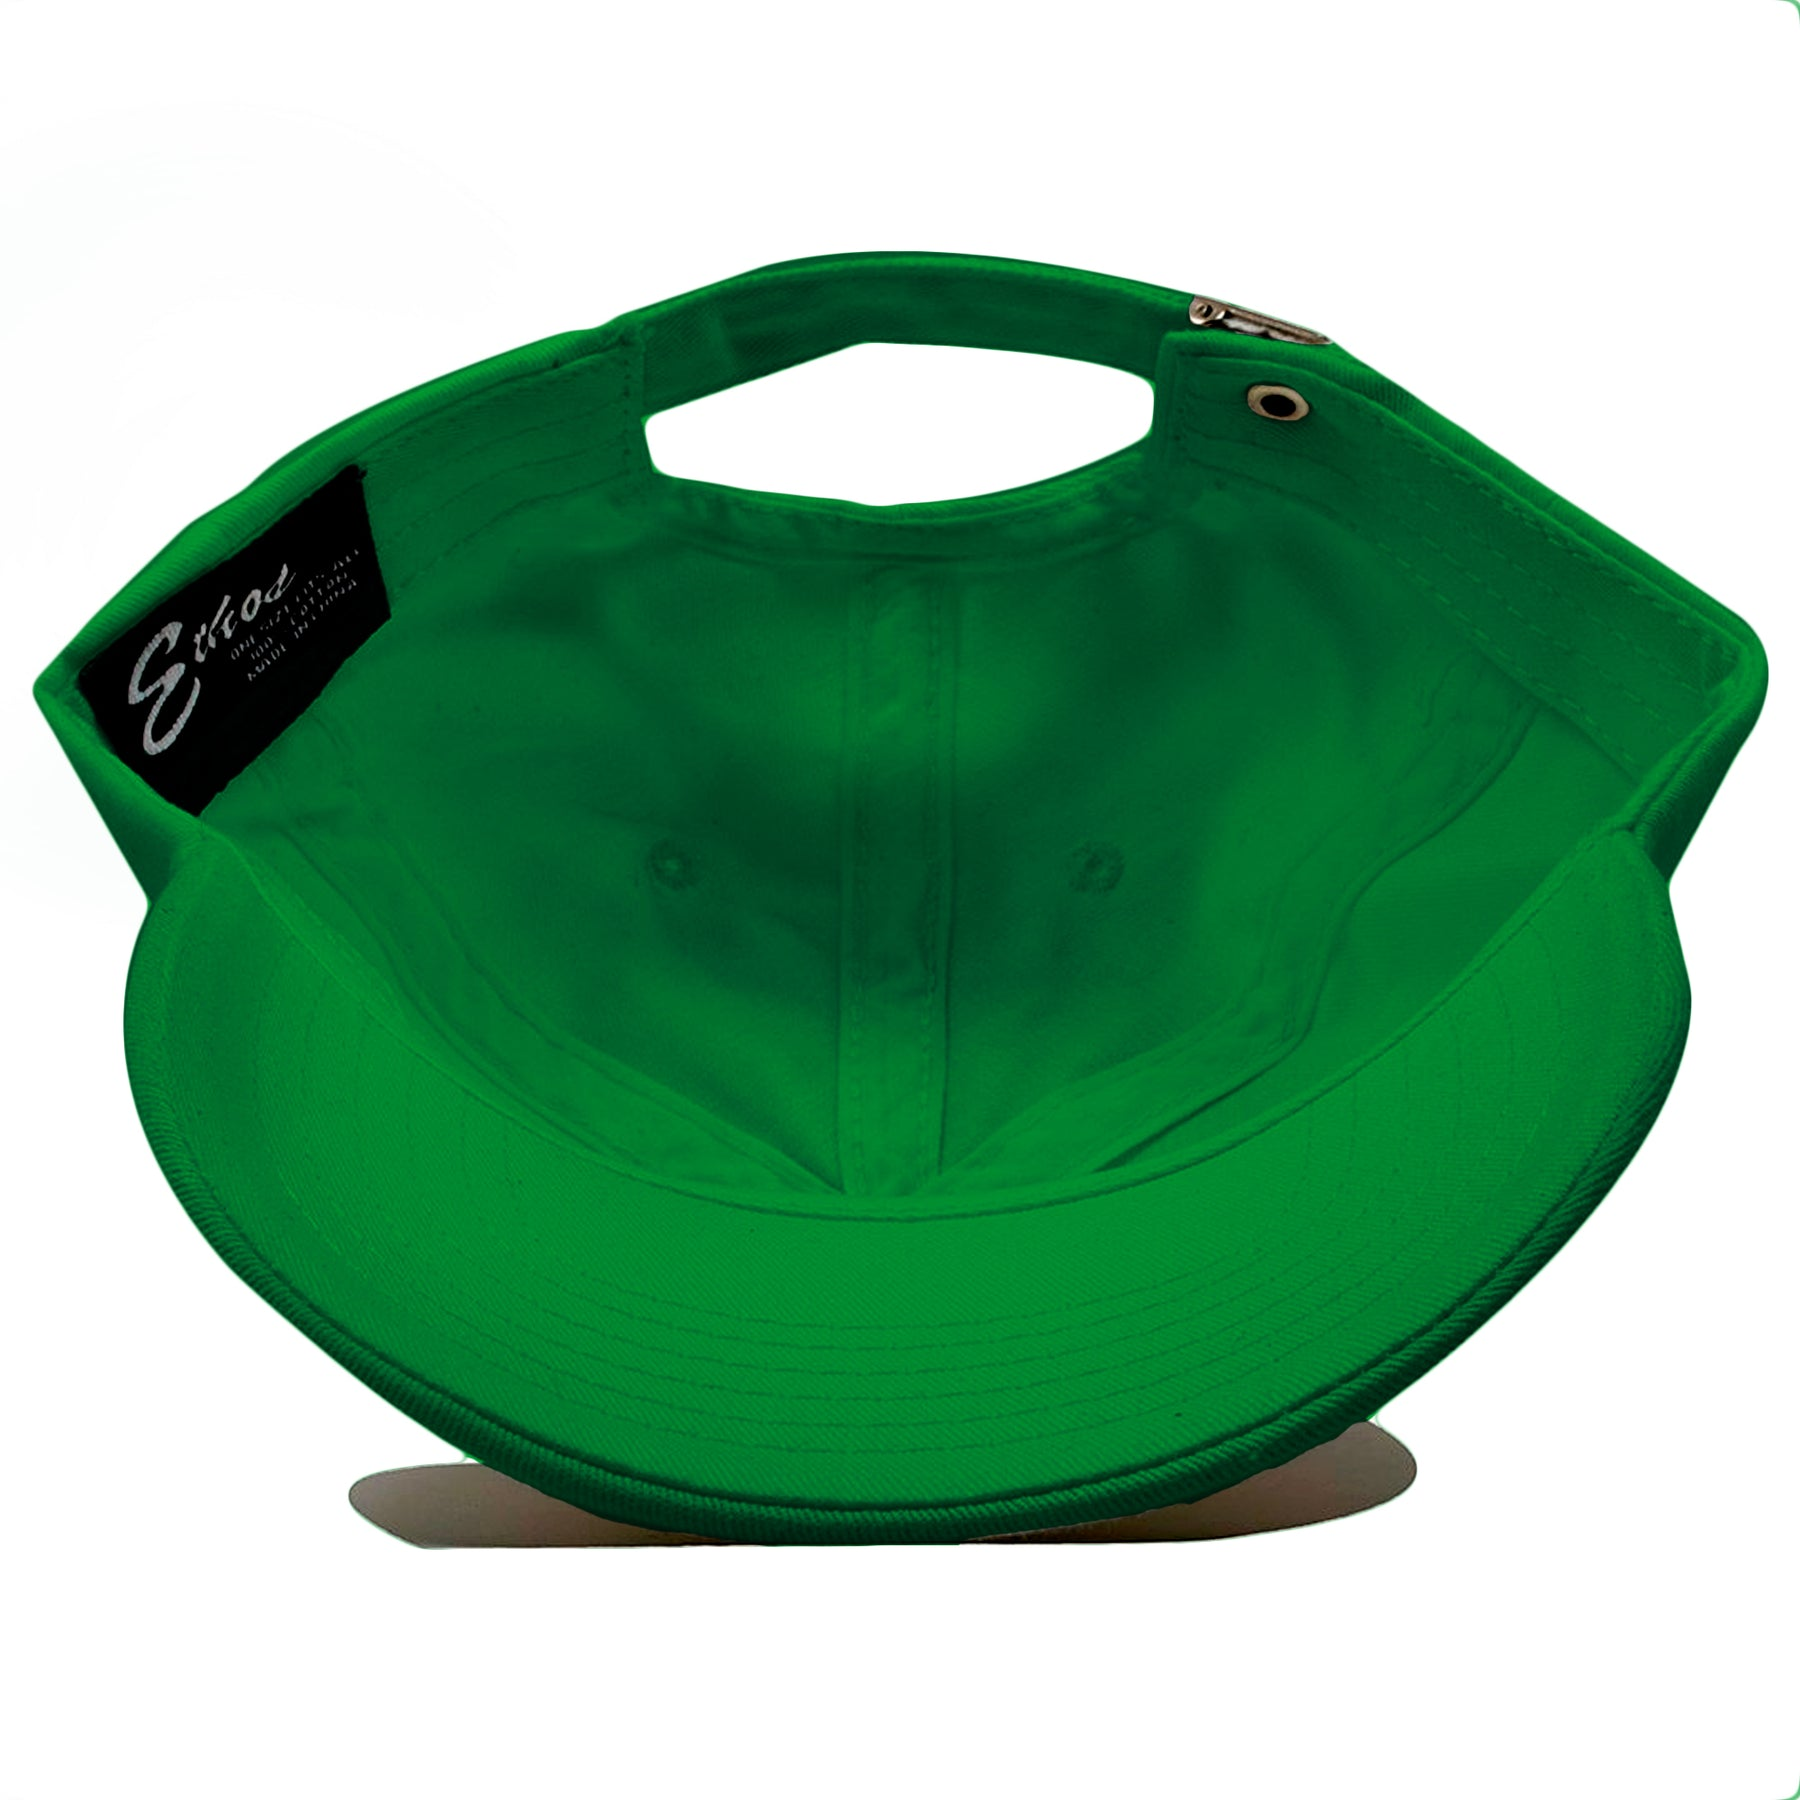 5aad3f3f6cc13 The interior of the blank kelly green ball cap is kelly green.